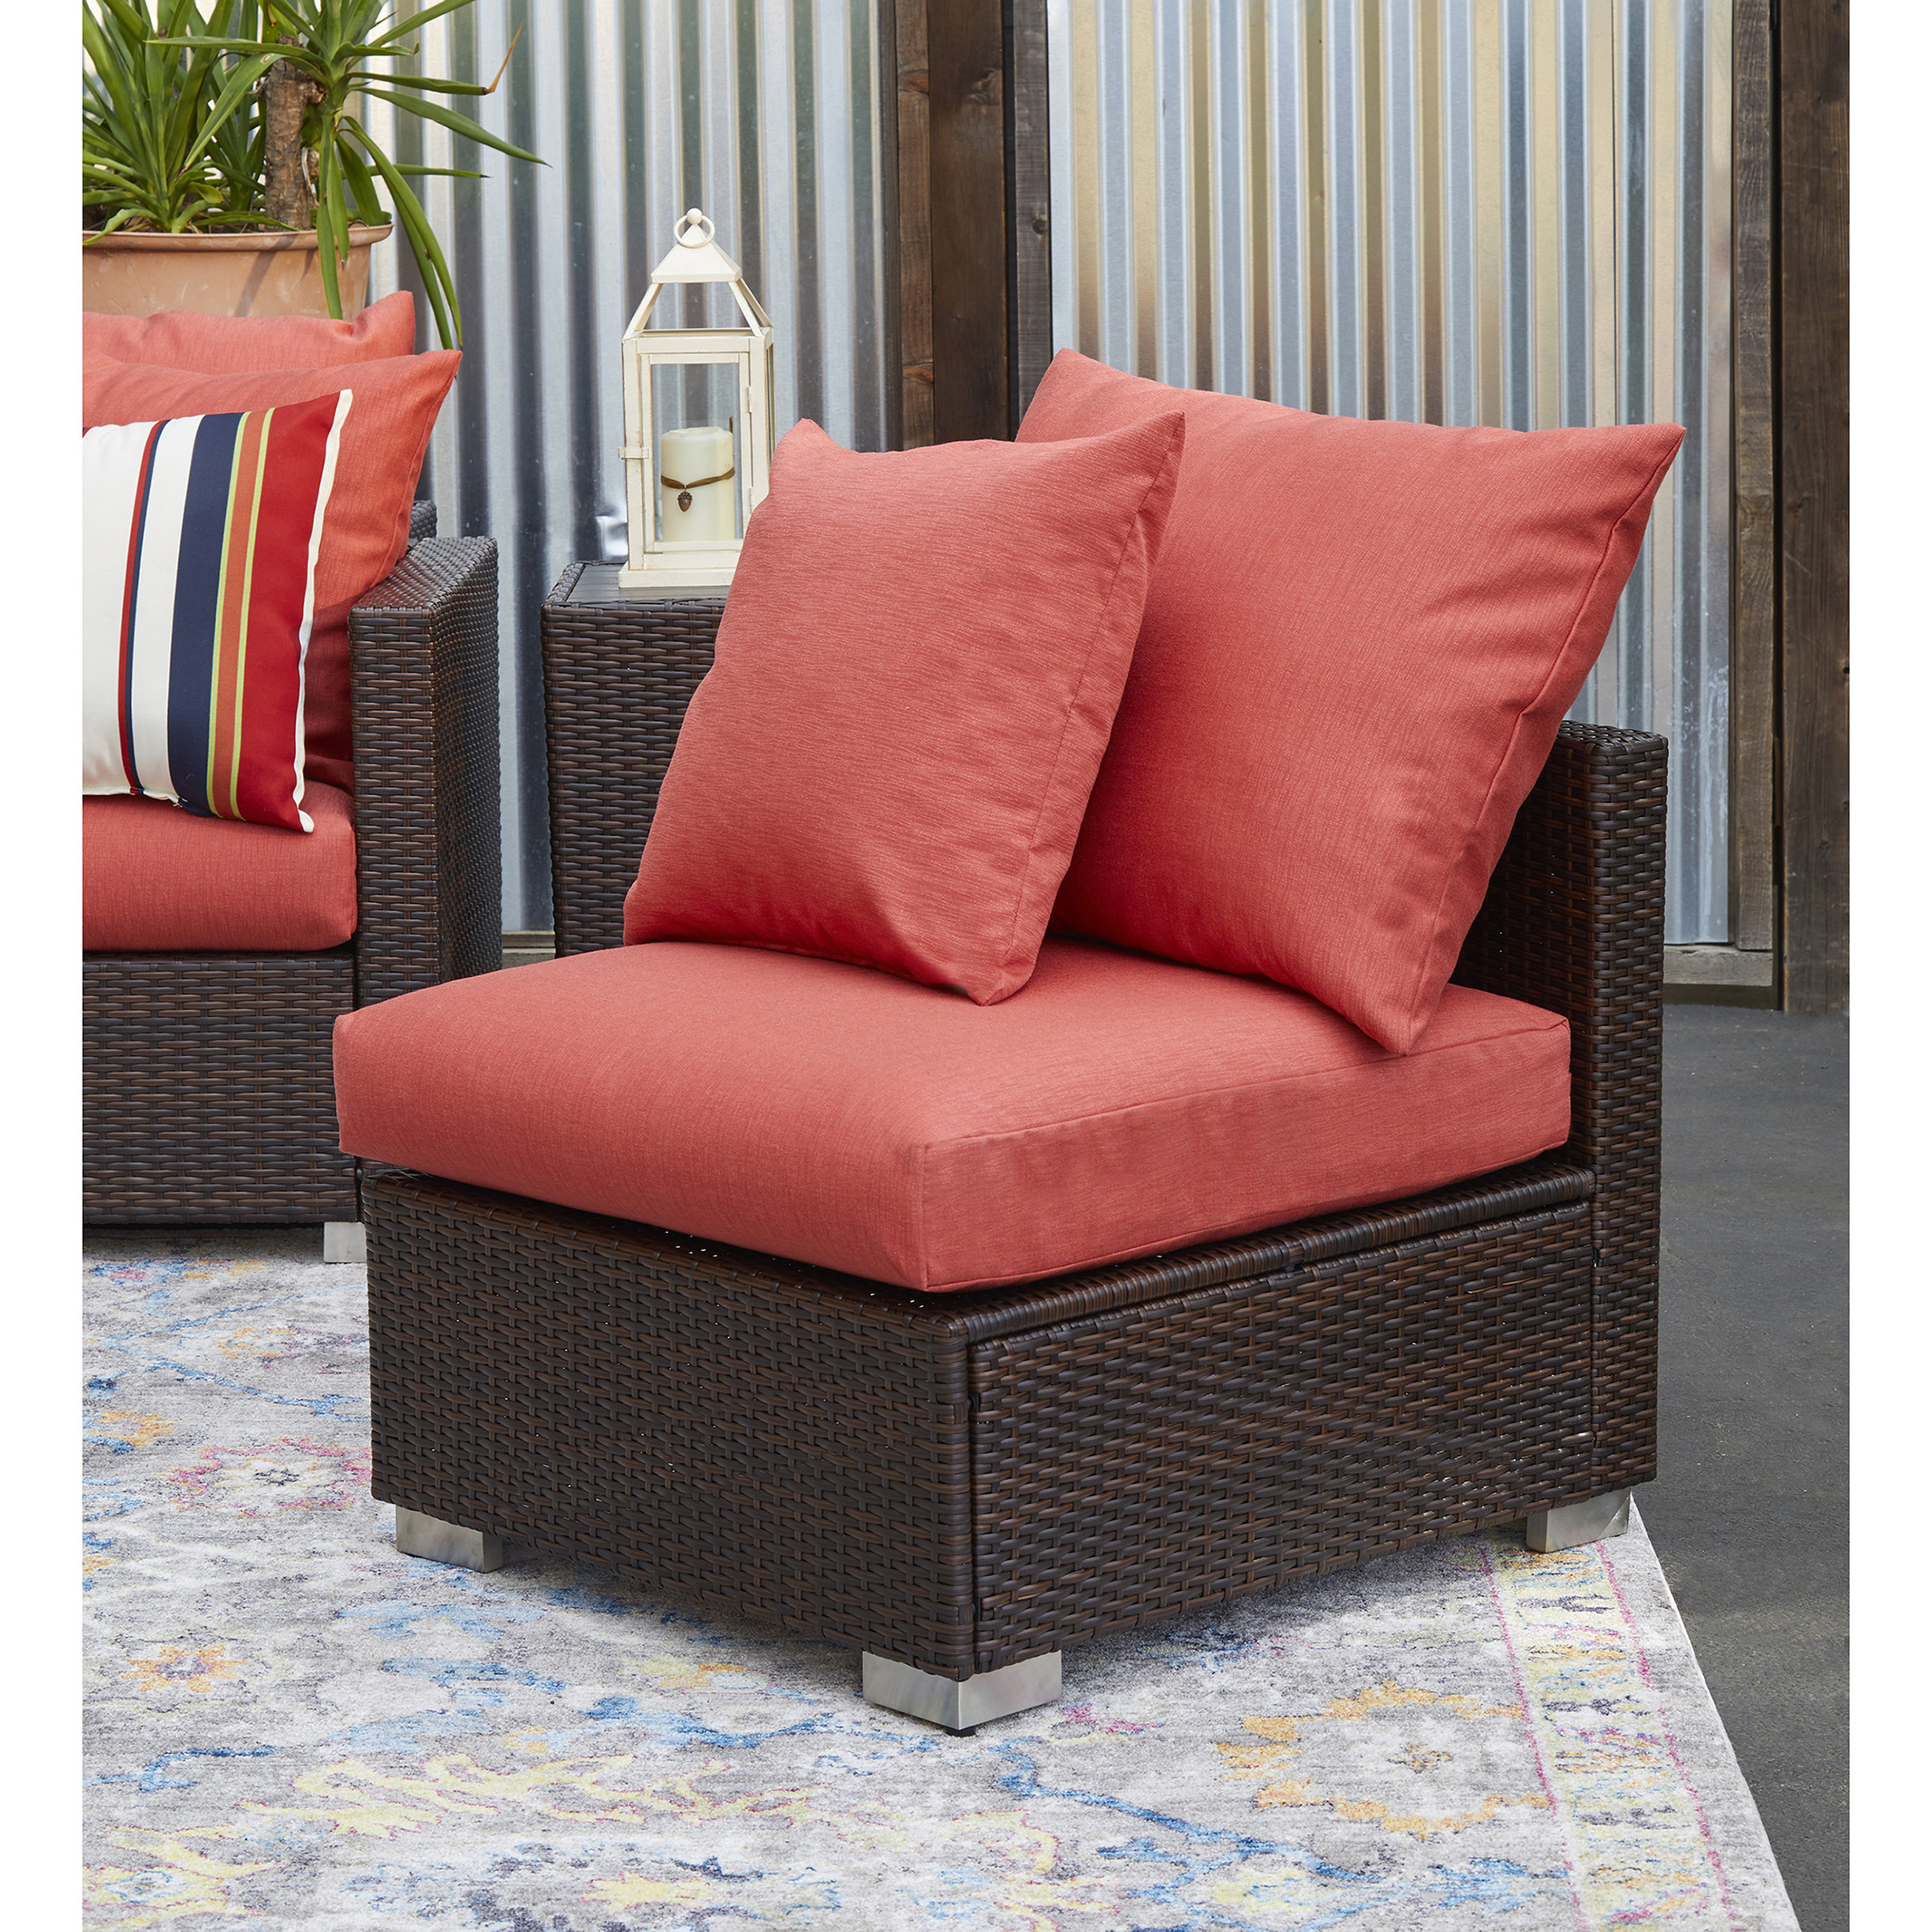 Widely Used Mcmanis Patio Sofas With Cushion With Regard To Mcmanis Outdoor Patio Chair With Cushions (View 20 of 20)